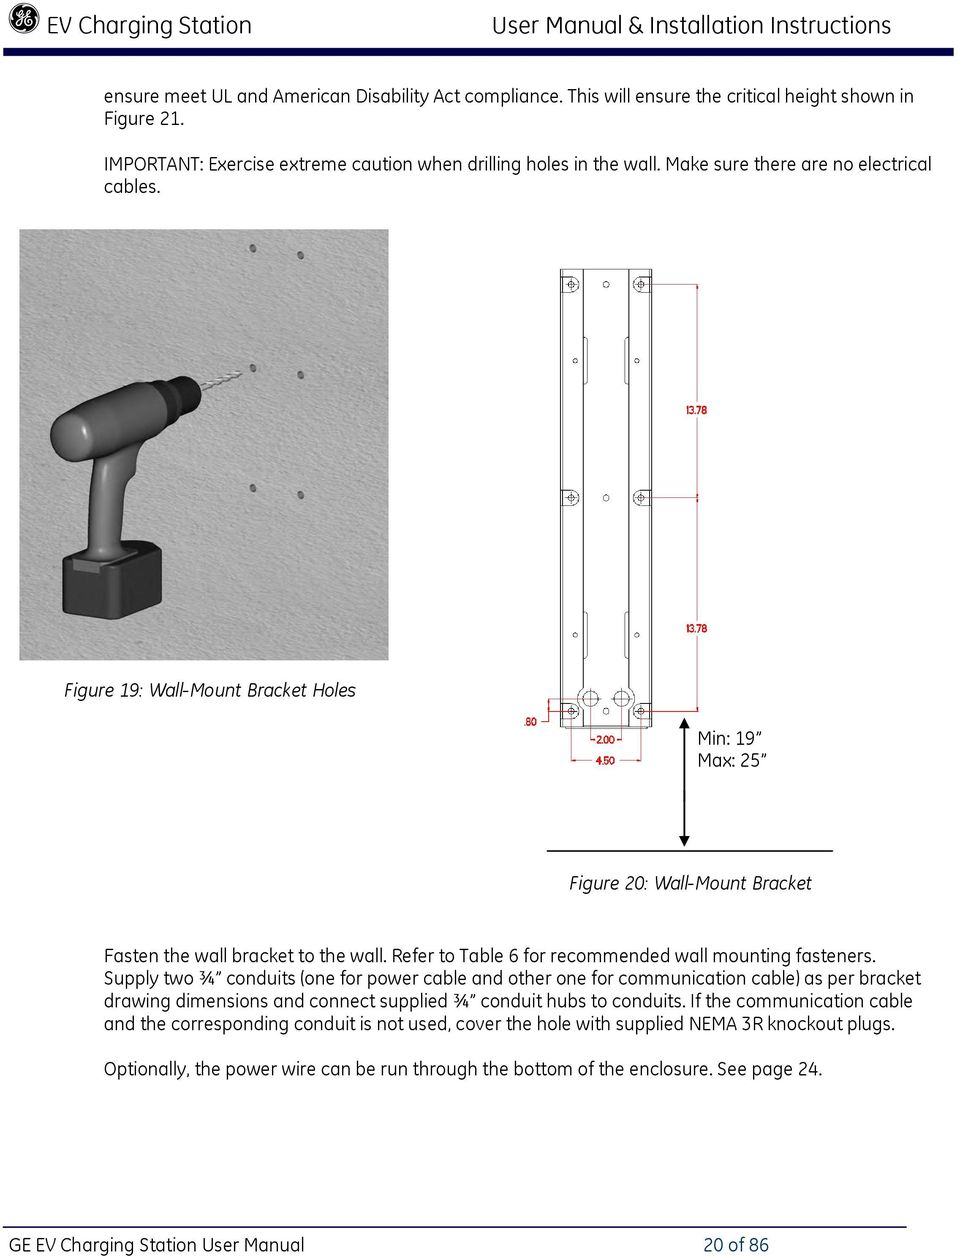 Nema Evse Charging Station User Manual Installation Instructions Pdf Ev Stations Wiring Diagram Ge 20 Of 86 Refer To Table 6 For Recommended Wall Mounting Fasteners